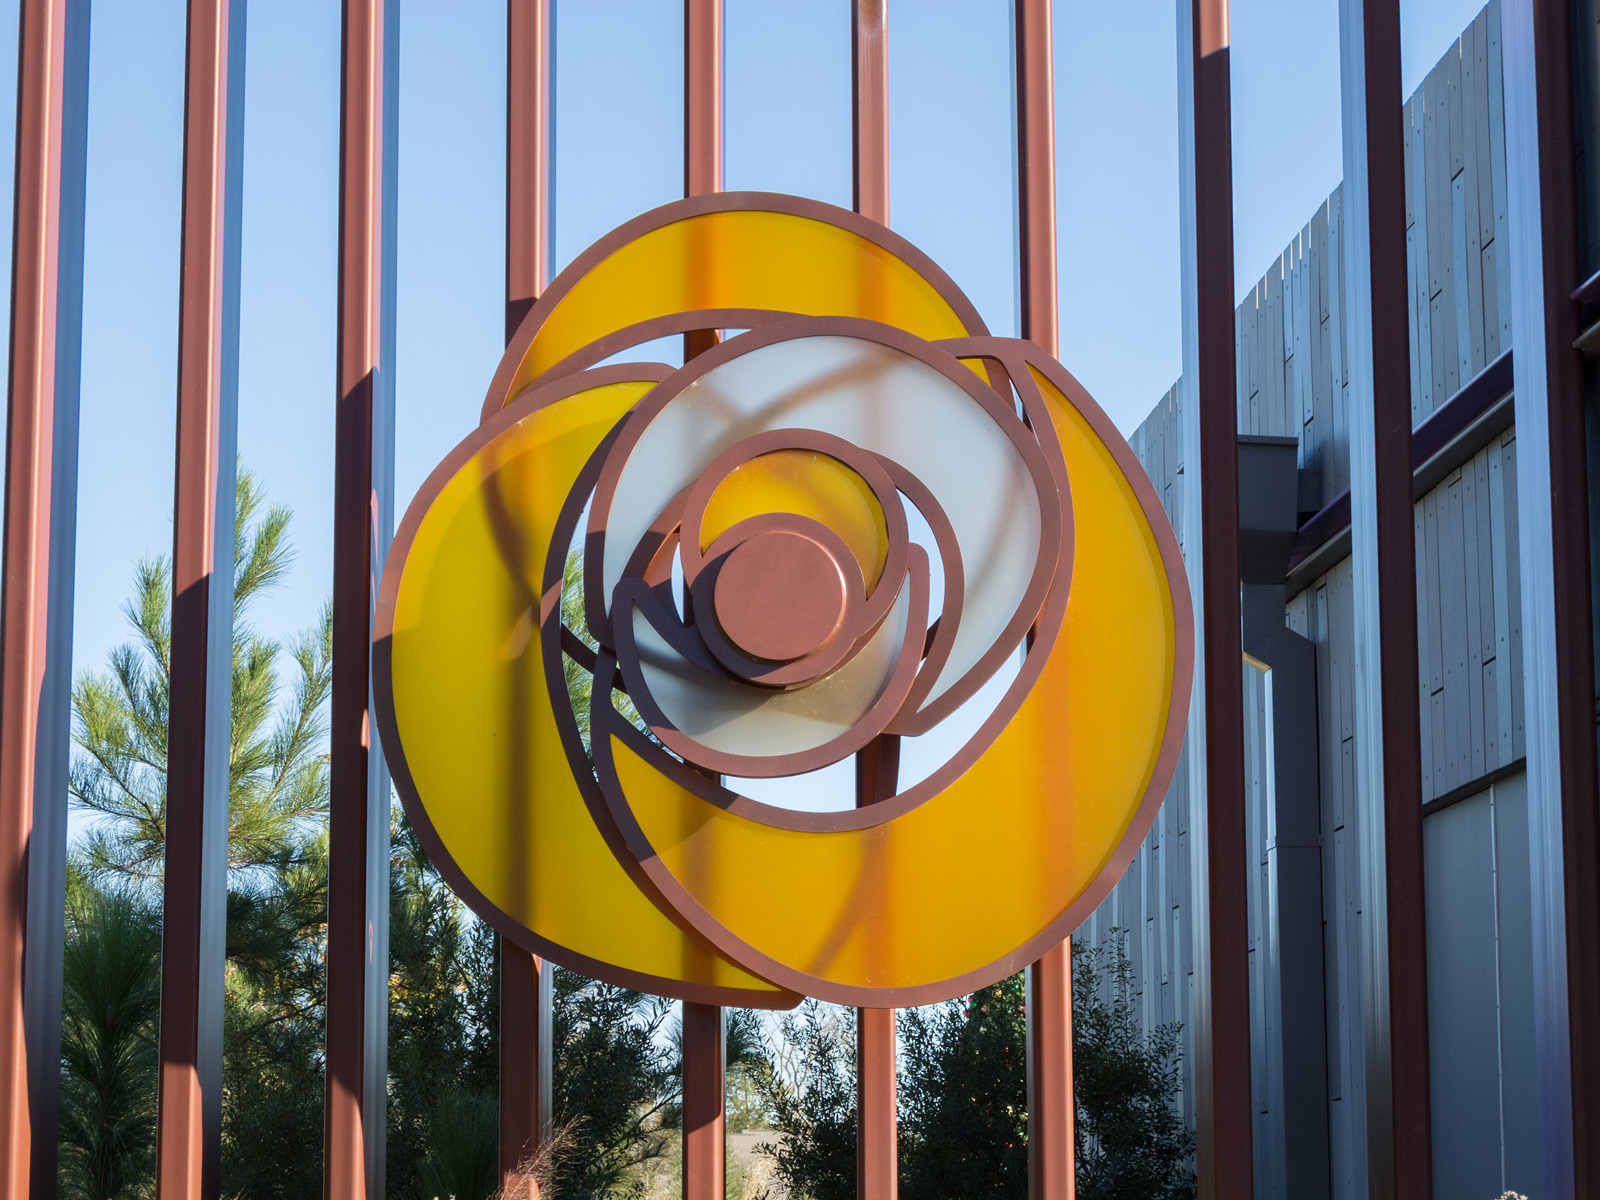 Close up view from front of custom fabricated rose sculpture with edge-lit 3Form petals.